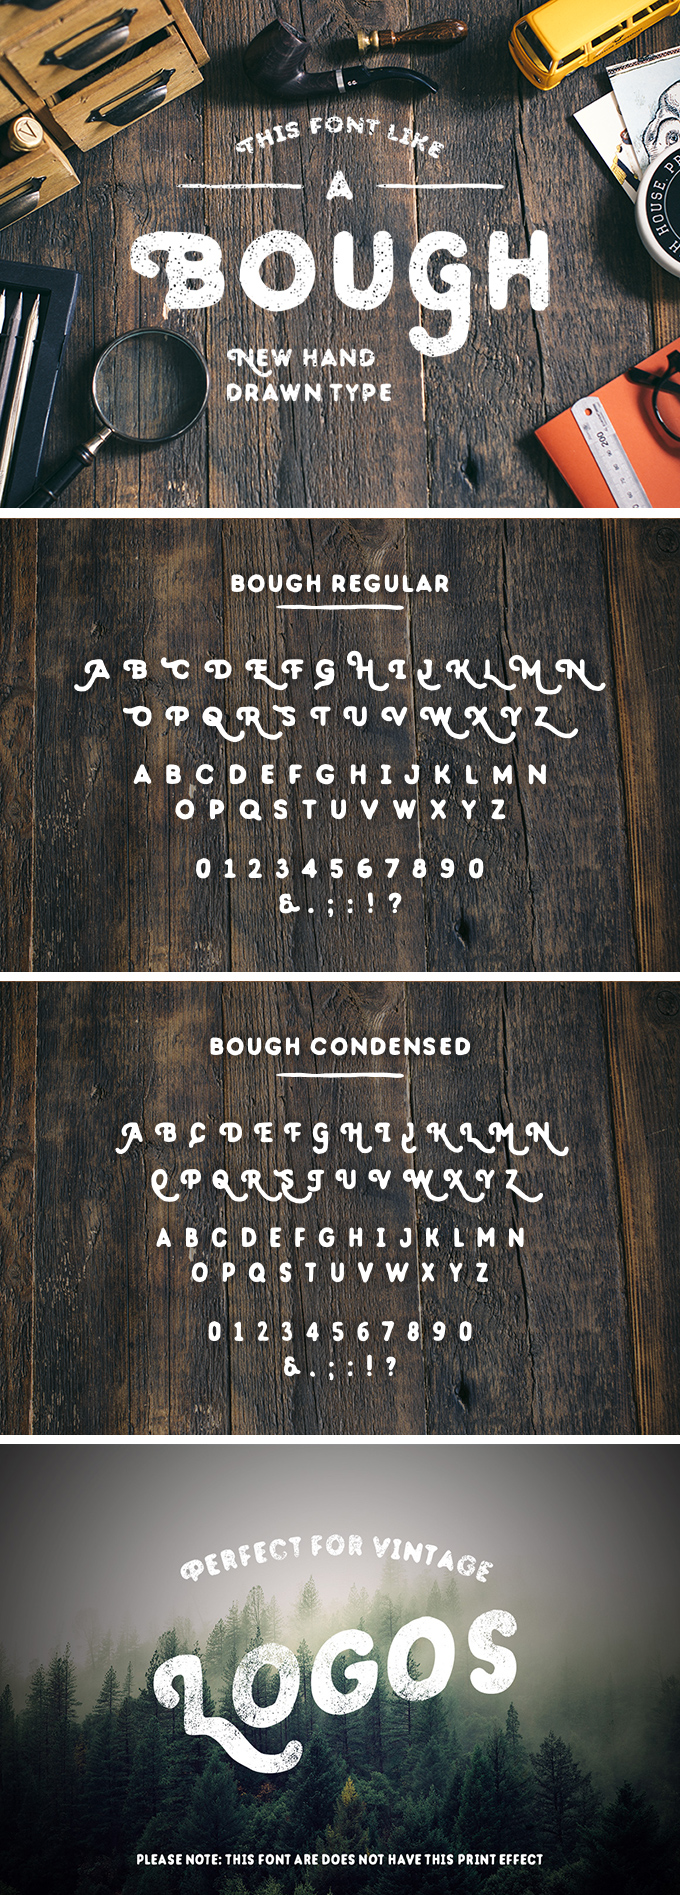 Drawn typeface different Free Typeface PixelBuddh Drawn by